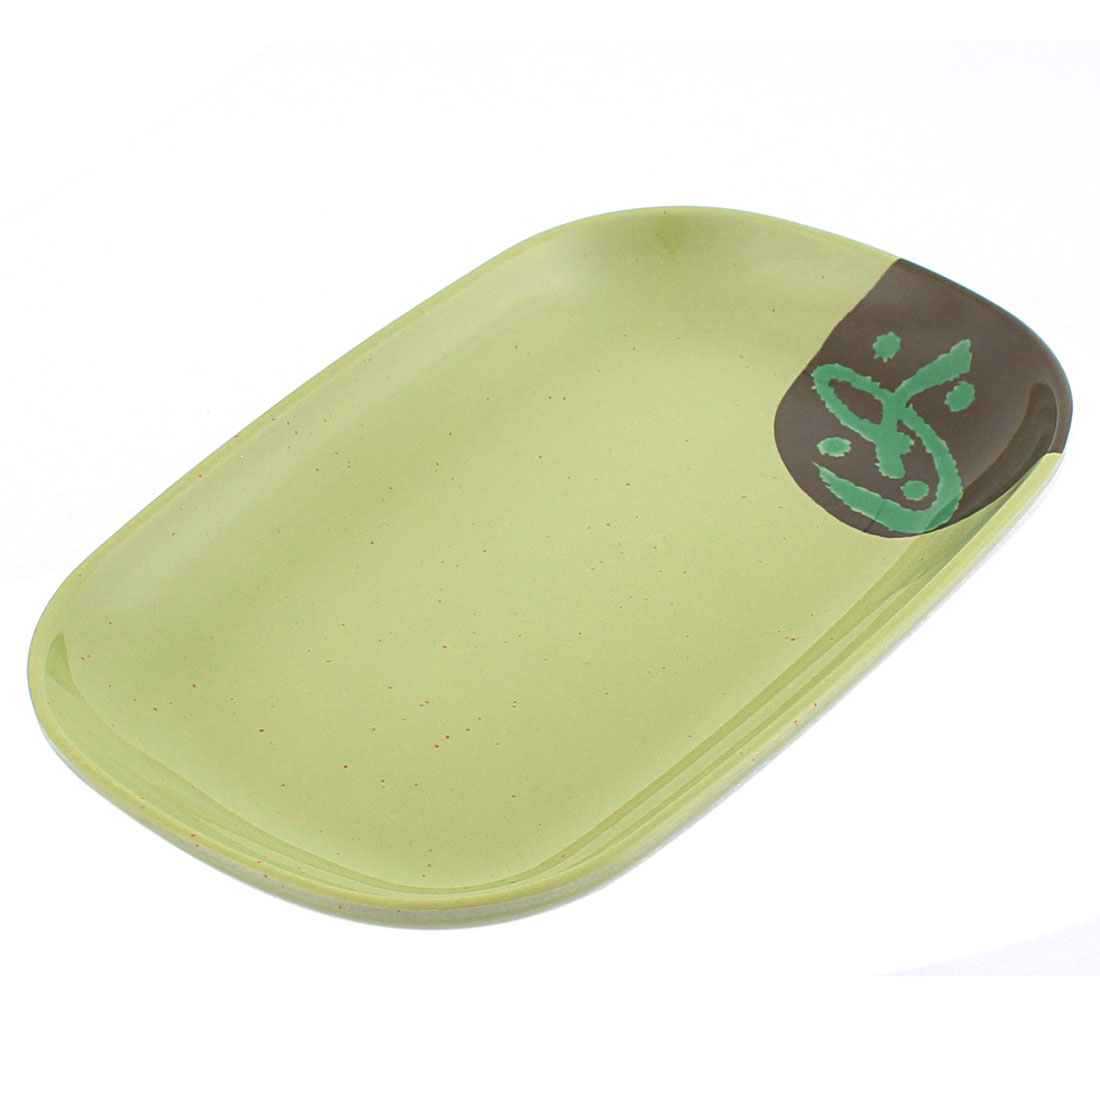 Rectangle Shaped Dinner Dessert Vermicelli Food Fruit Plate Dish Olive Green